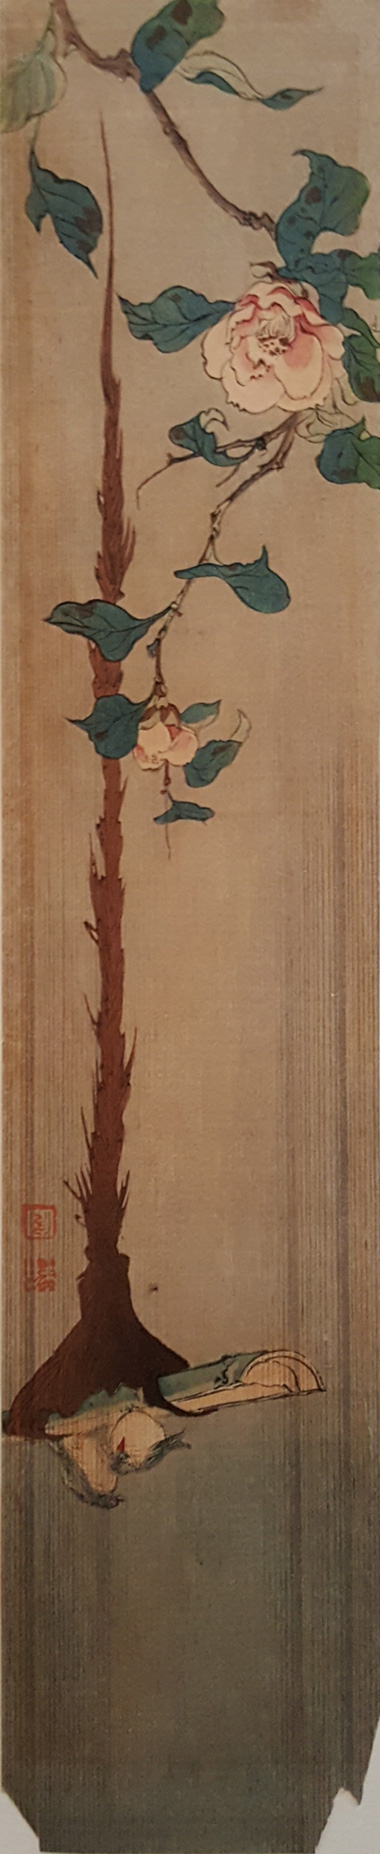 Camellia on a Rainy Day by Koho Shoda